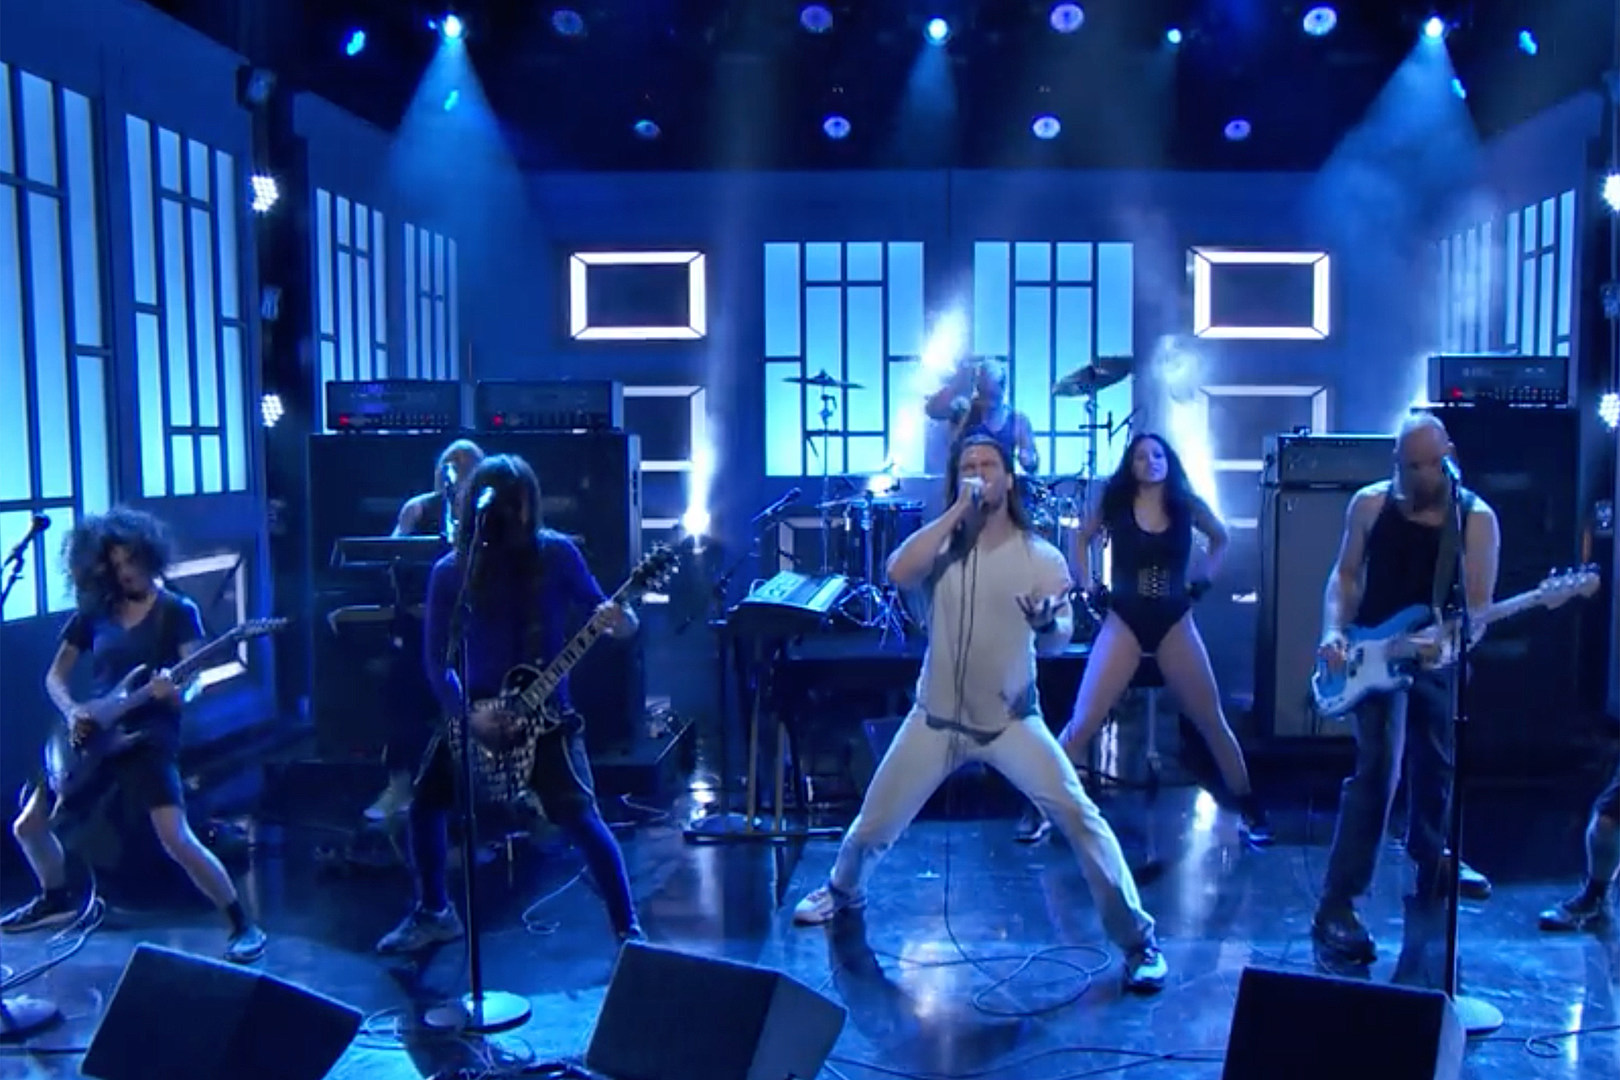 Andrew W.K. Brings 'Music Is Worth Living For' to 'Conan' Stage